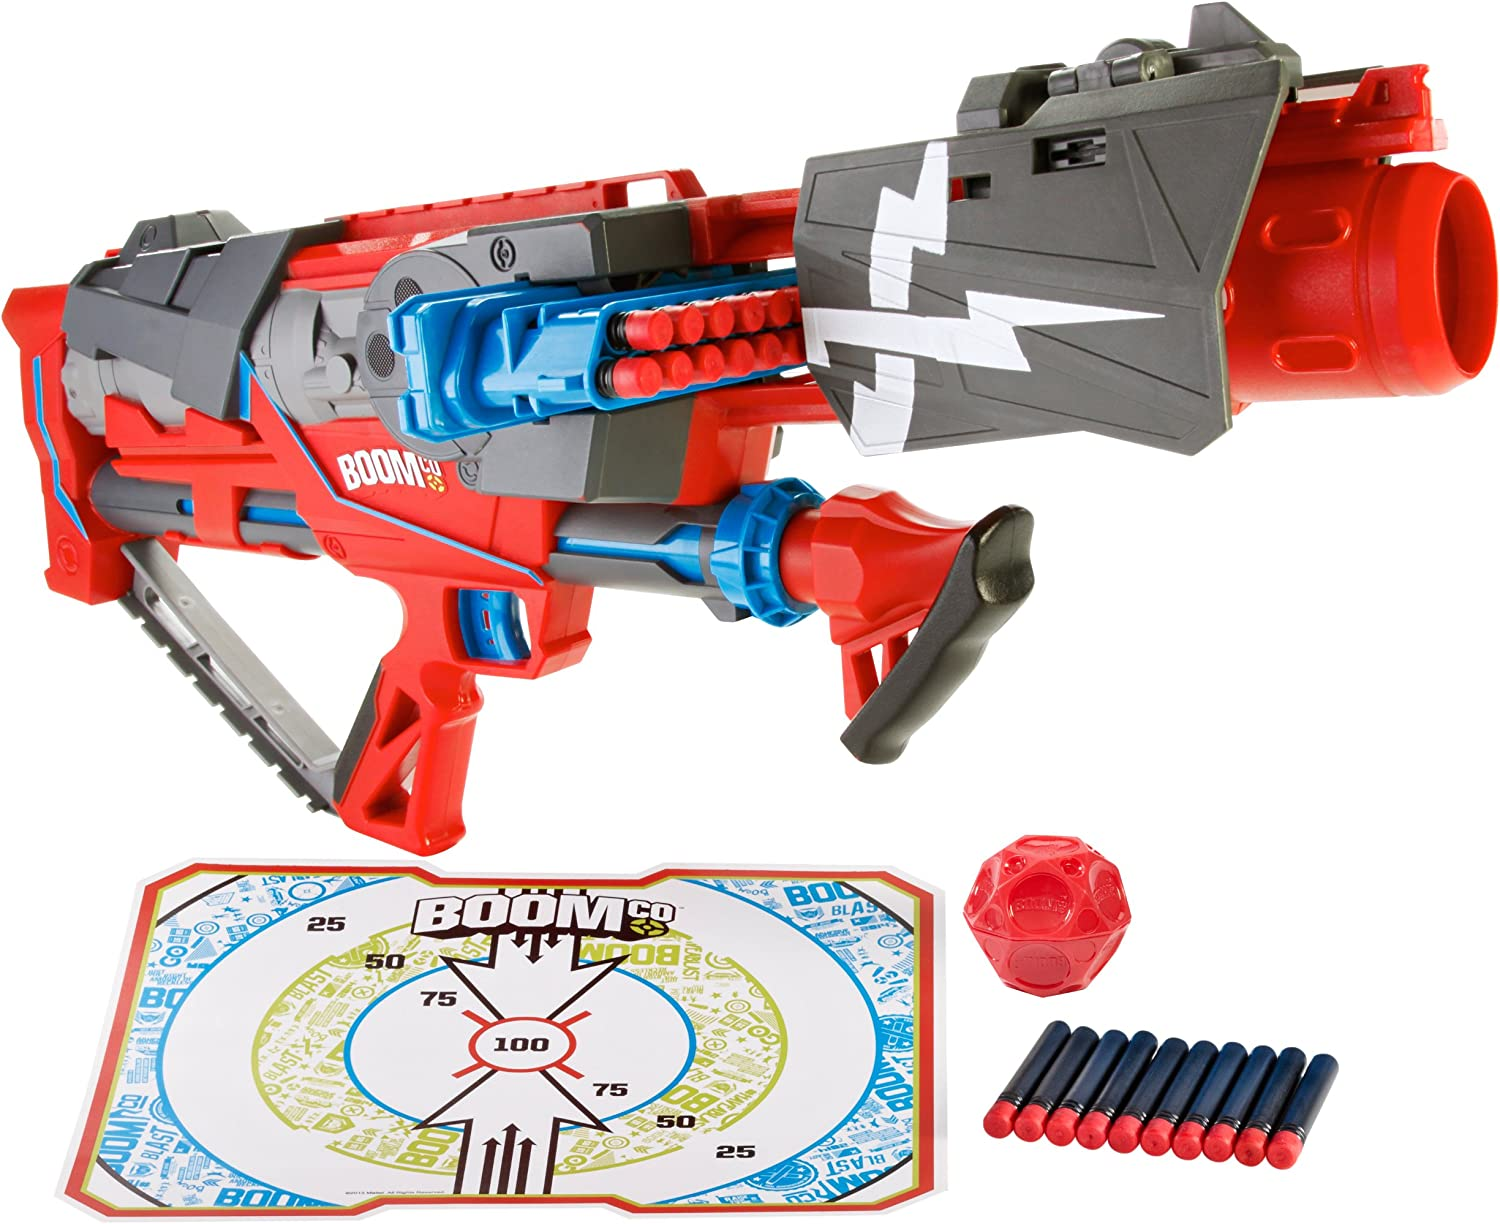 BOOMco. Rapid Madness Blaster with Rounds by BOOMco